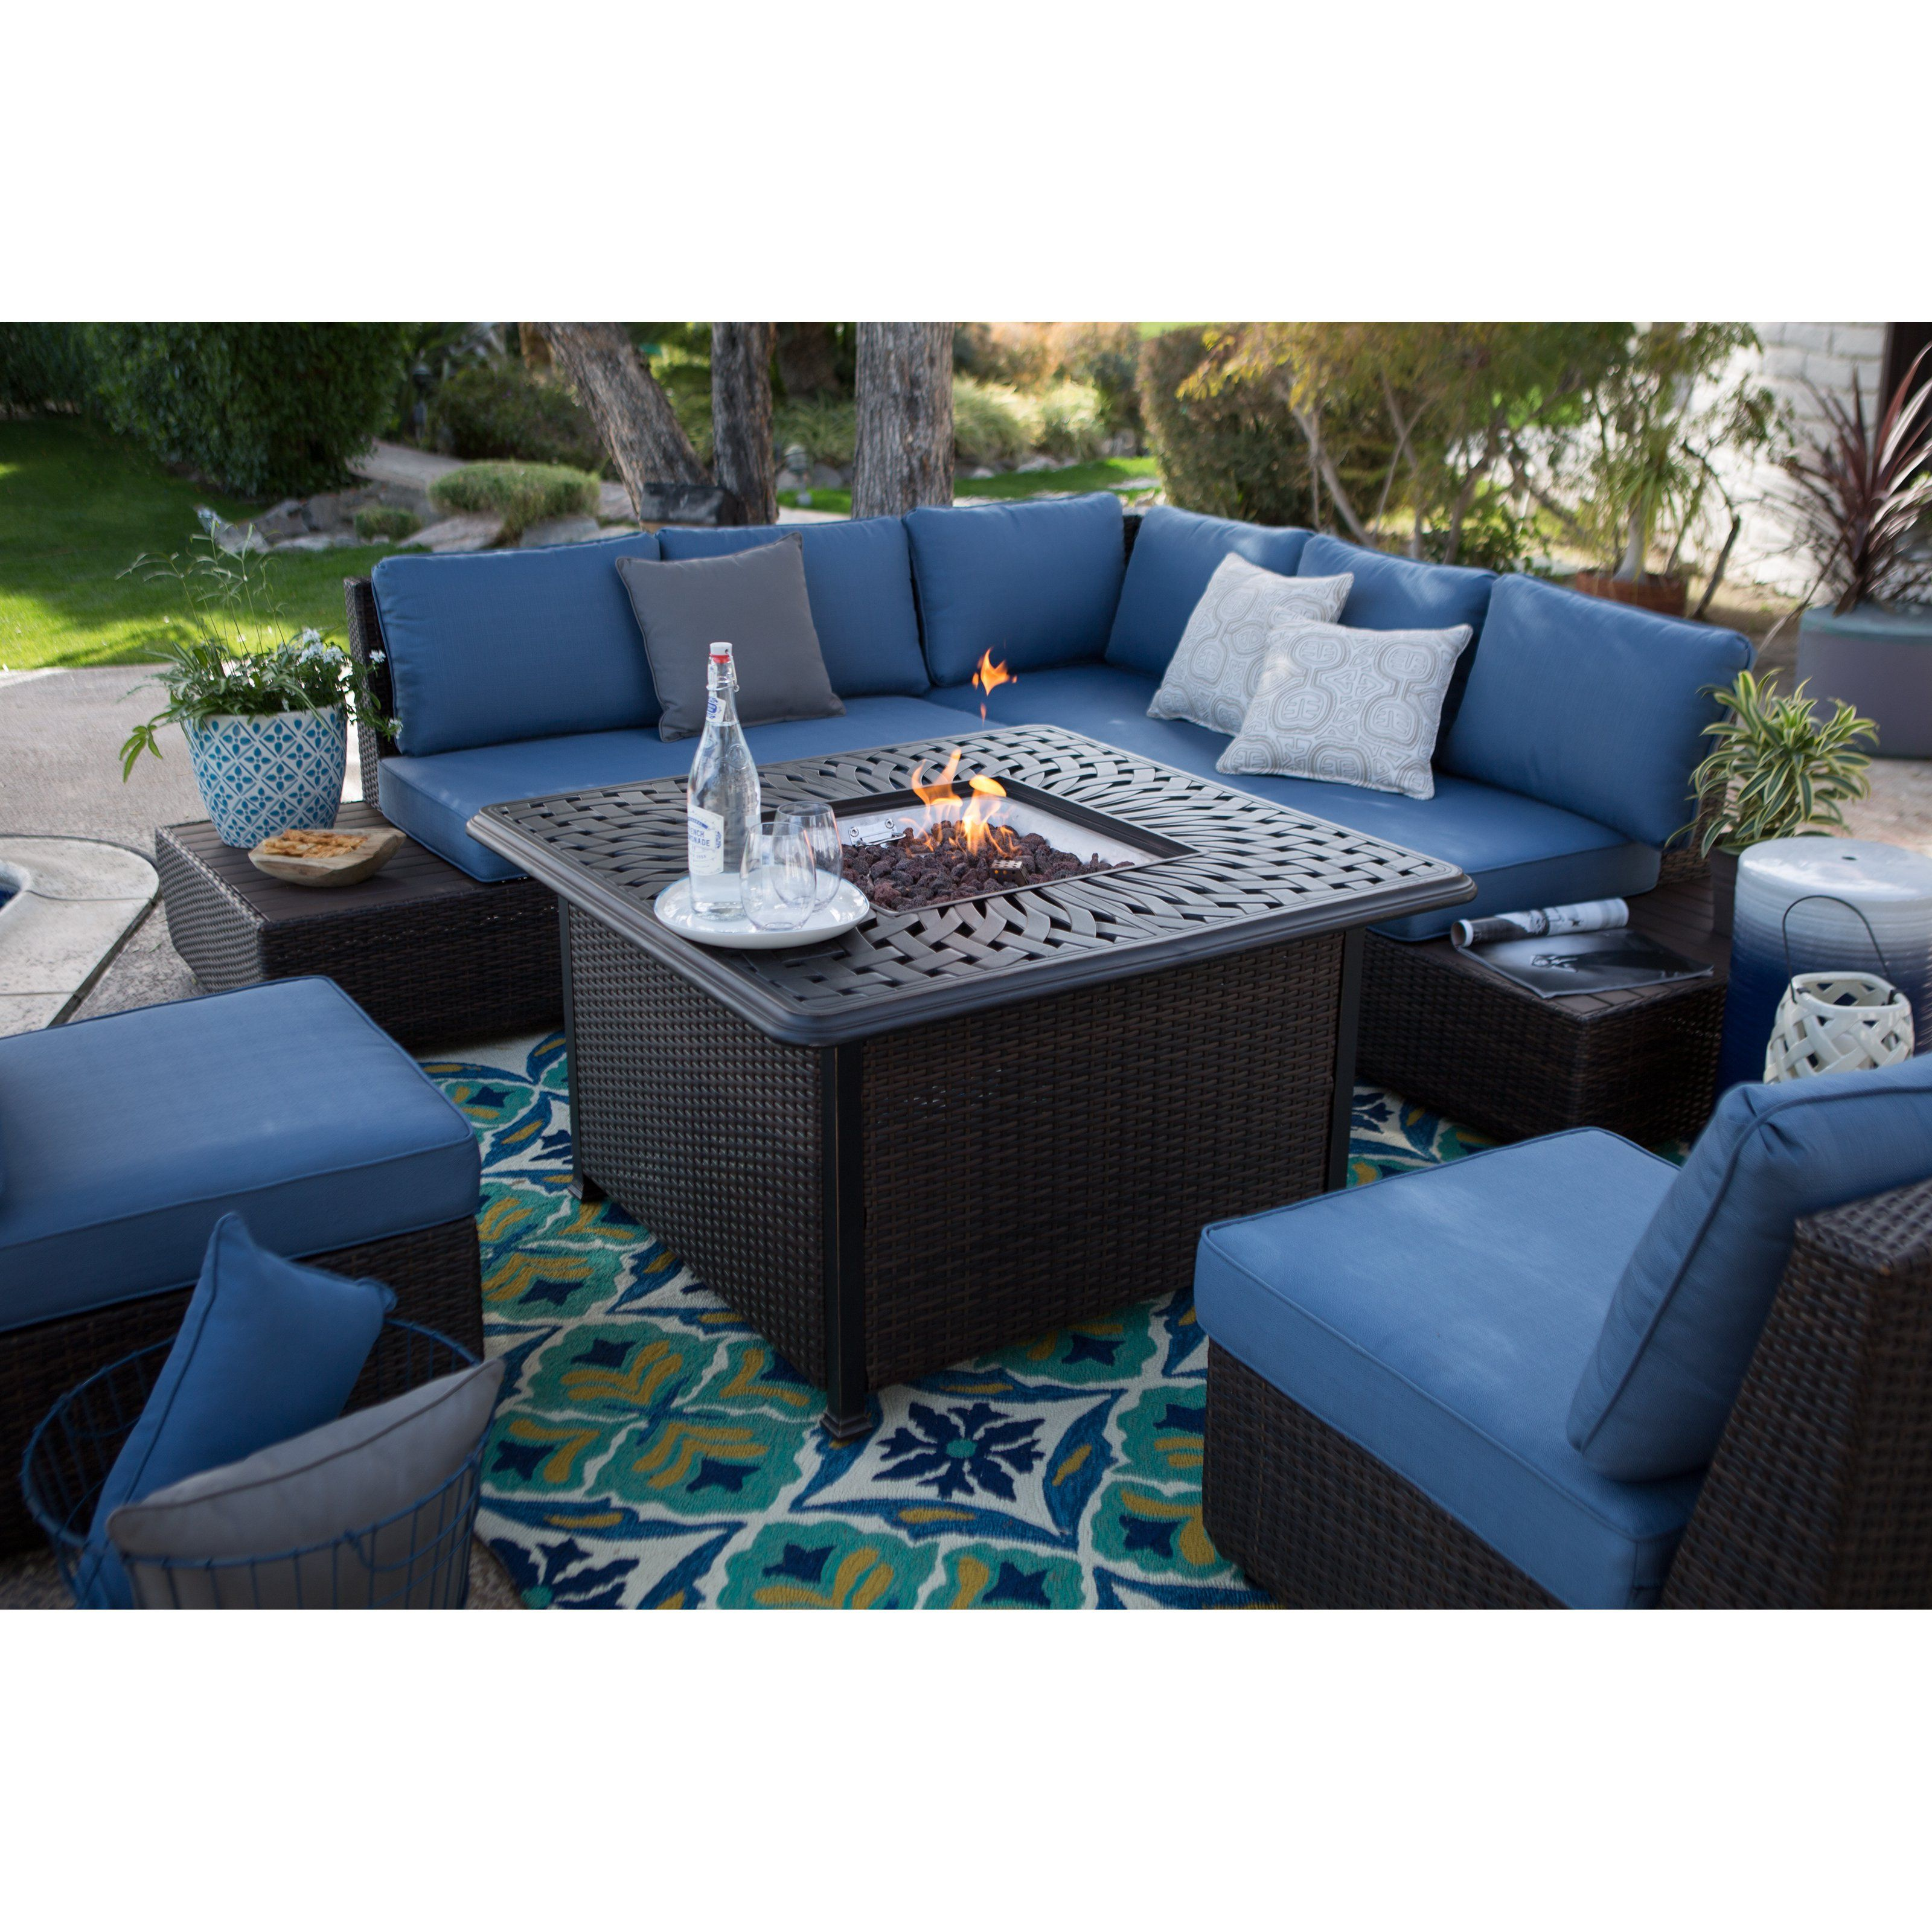 Download Wallpaper Patio Furniture Sets With Fire Pit